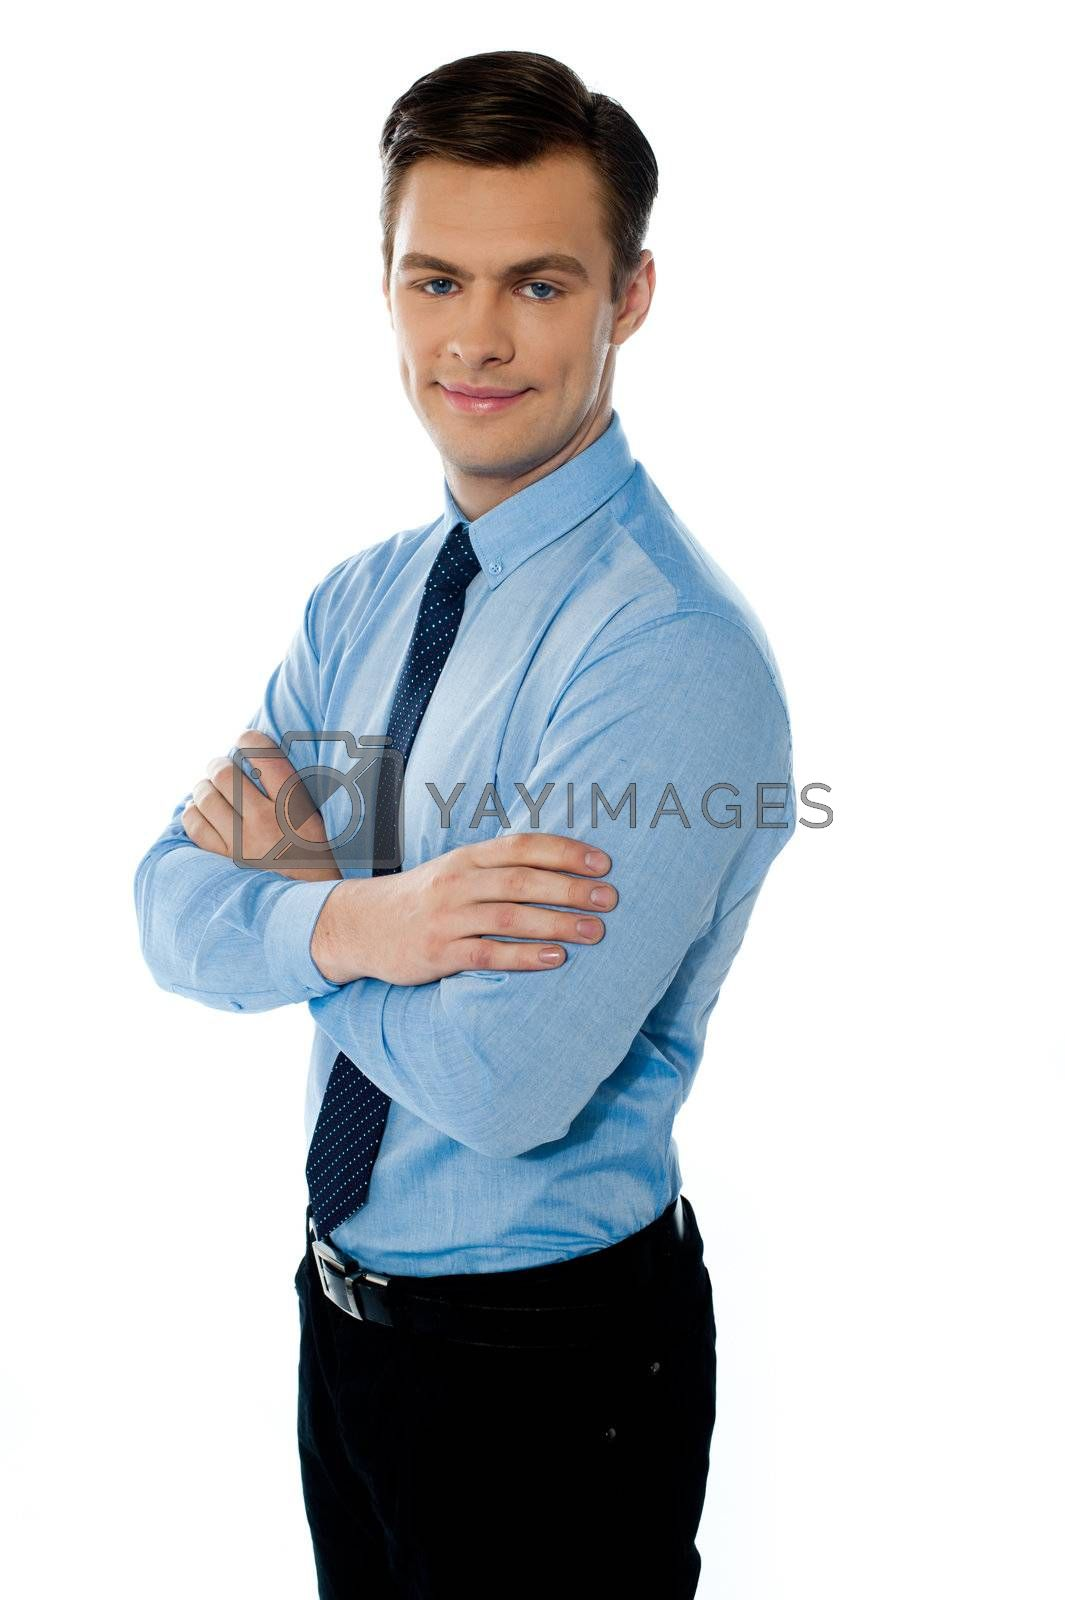 Executive standing isolated with folded hands and smiling at camera